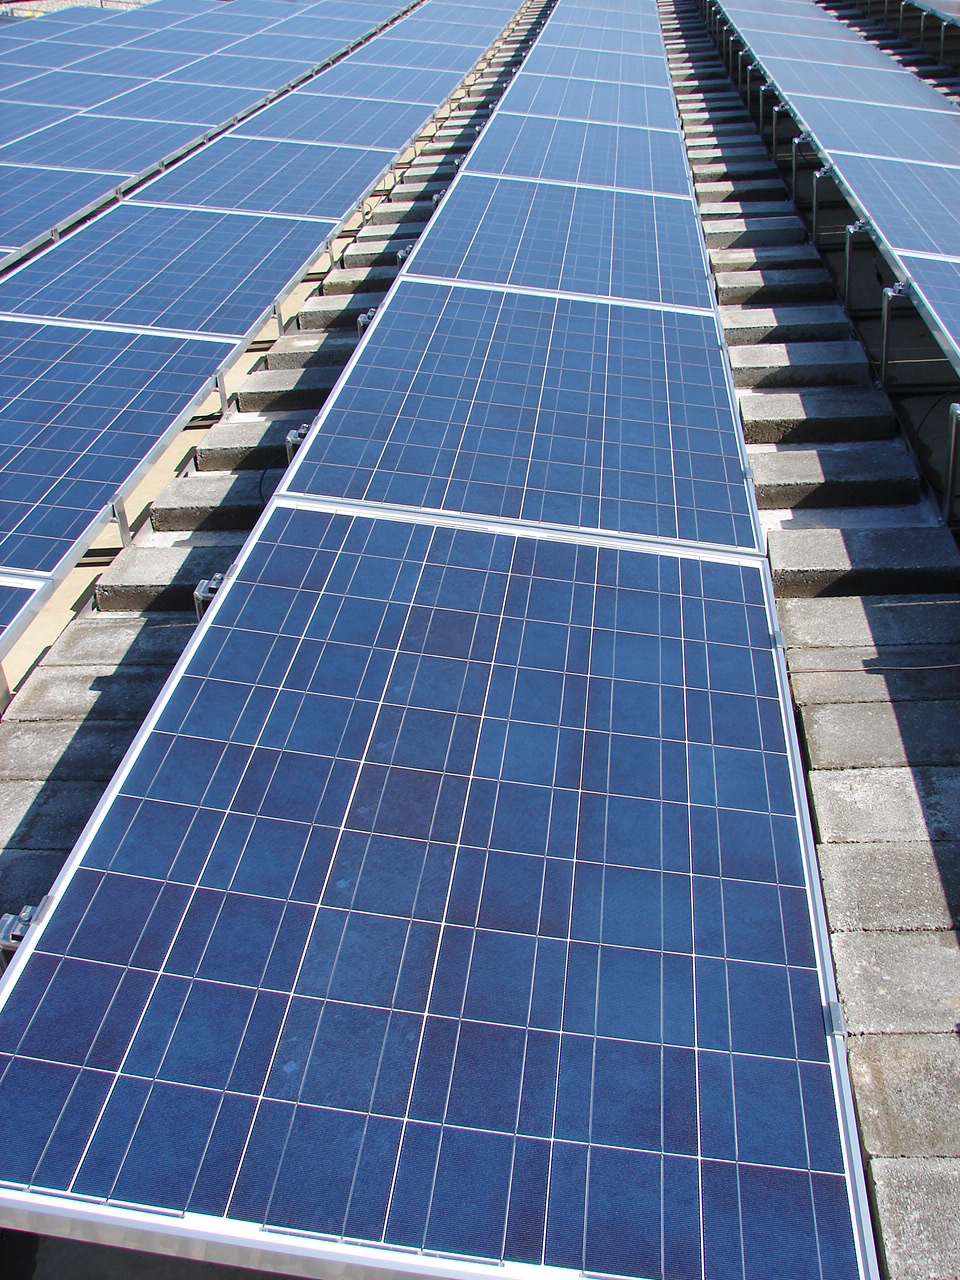 Rooftop solar farms